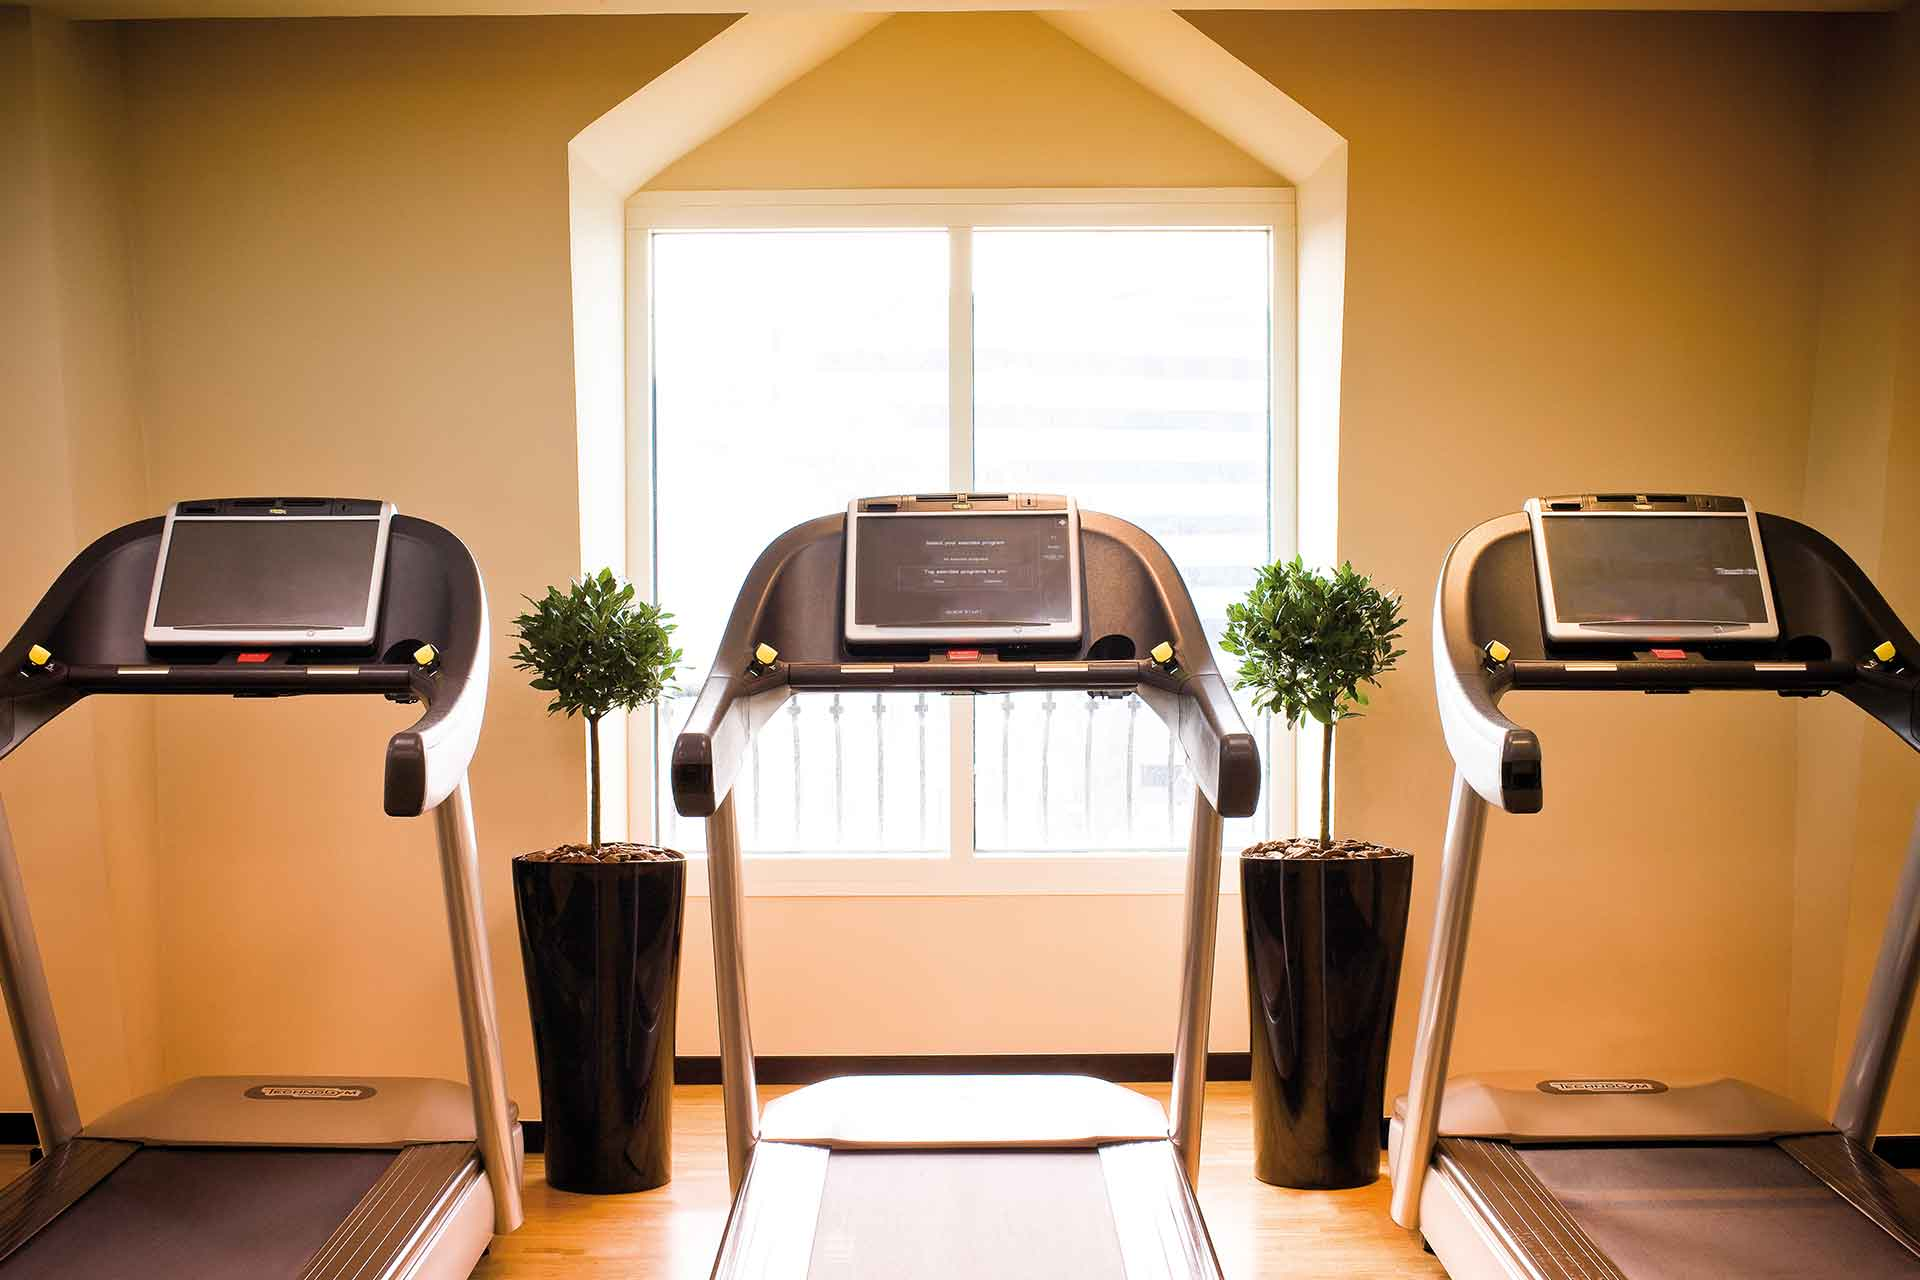 Treadmills of the gym at AVANI Deira Dubai Hotel